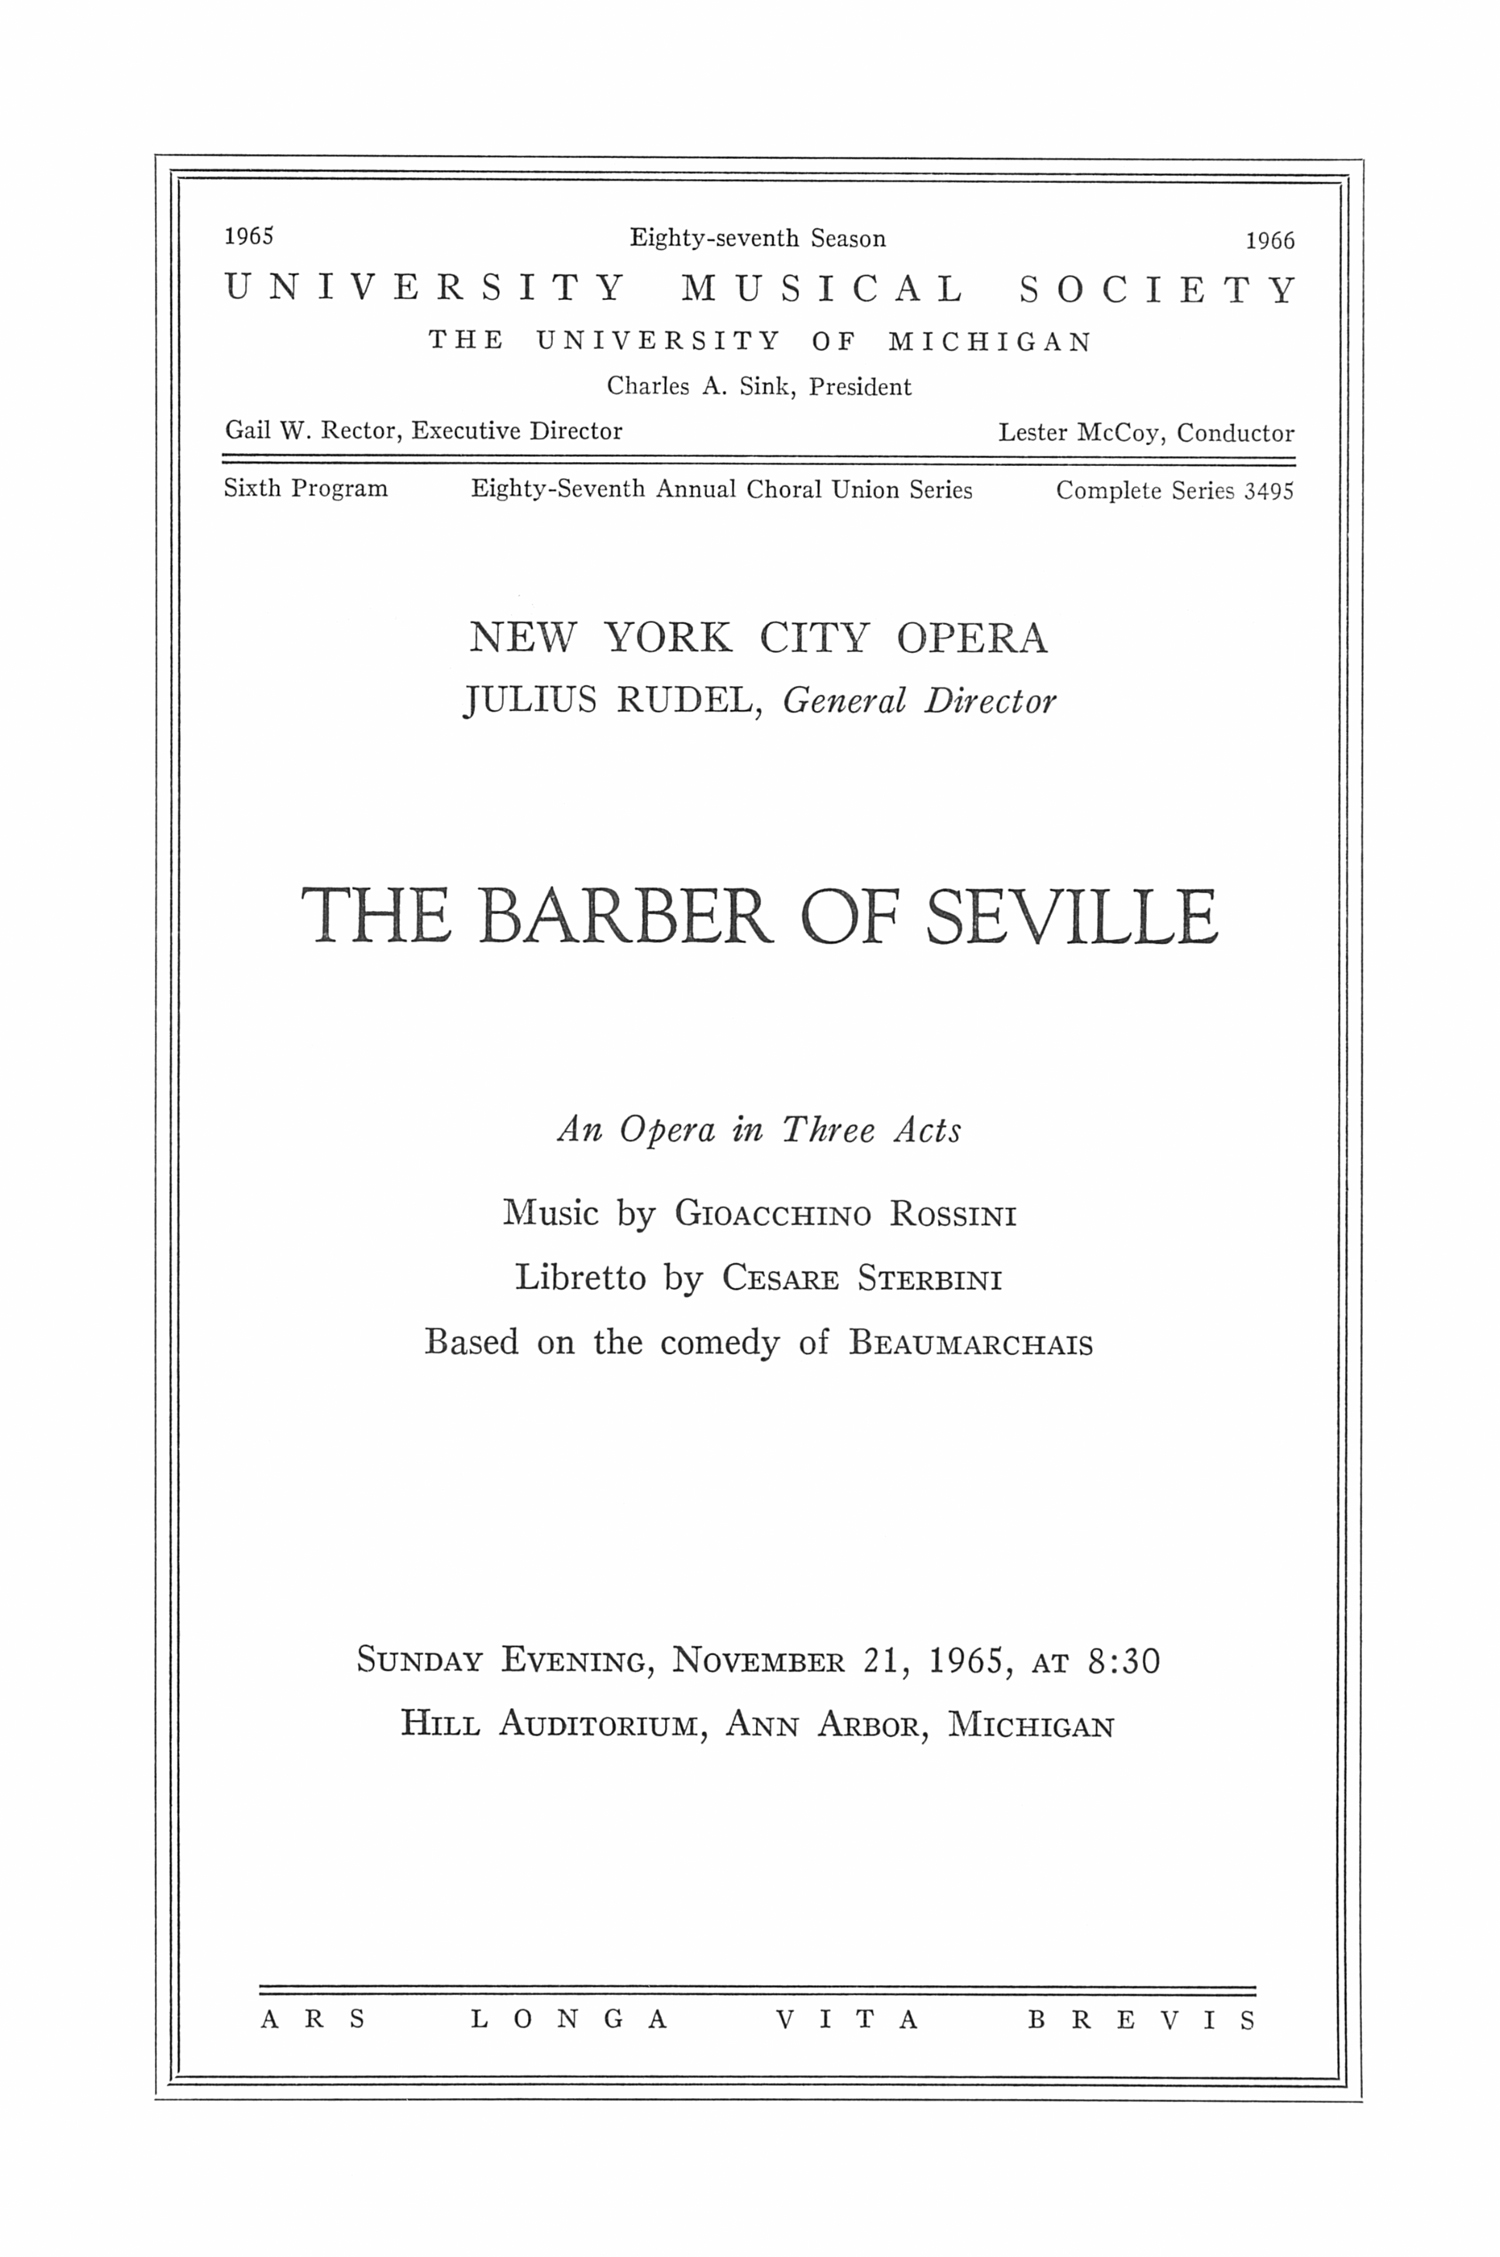 UMS Concert Program, November 21, 1965: The Barber Of Seville -- Julius Rudei image